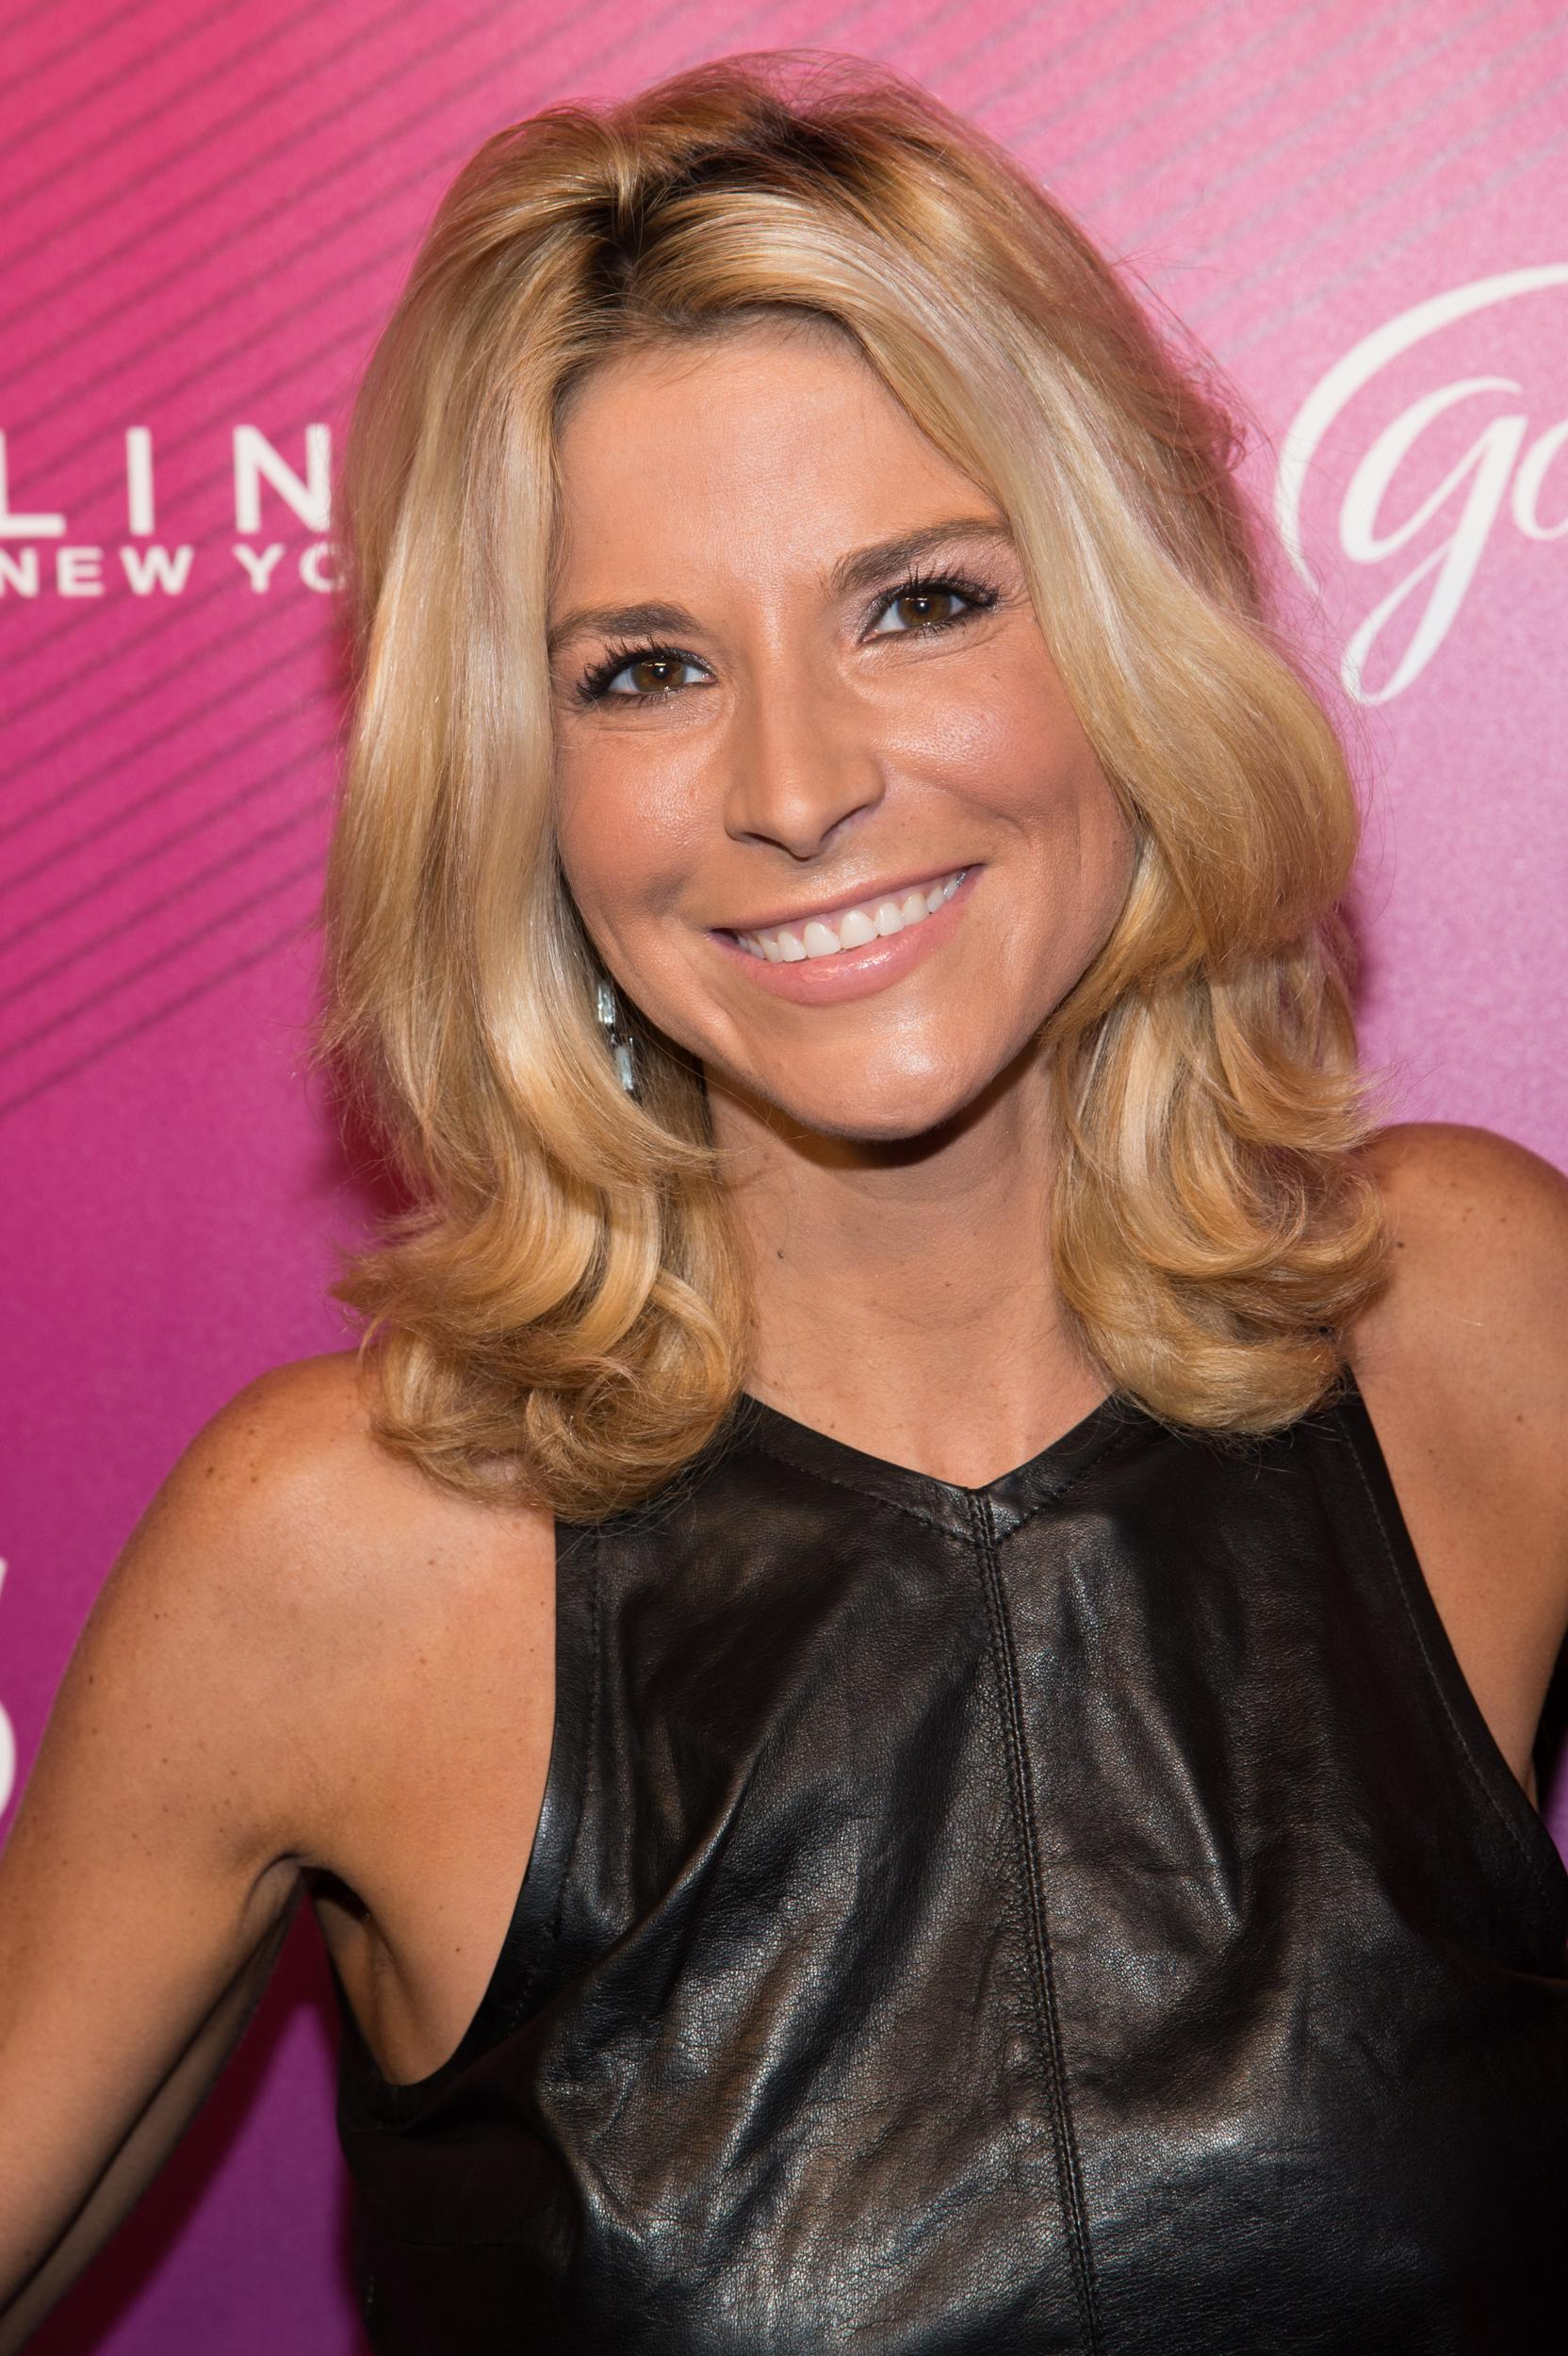 NEW YORK, NY - SEPTEMBER 10:  Diem Brown attends Us Weekly's Most Stylish New Yorkers of 2014 at Diamond Horseshoe at the Paramount Hotel on September 10, 2014 in New York City.  (Photo by Mark Sagliocco/Getty Images)